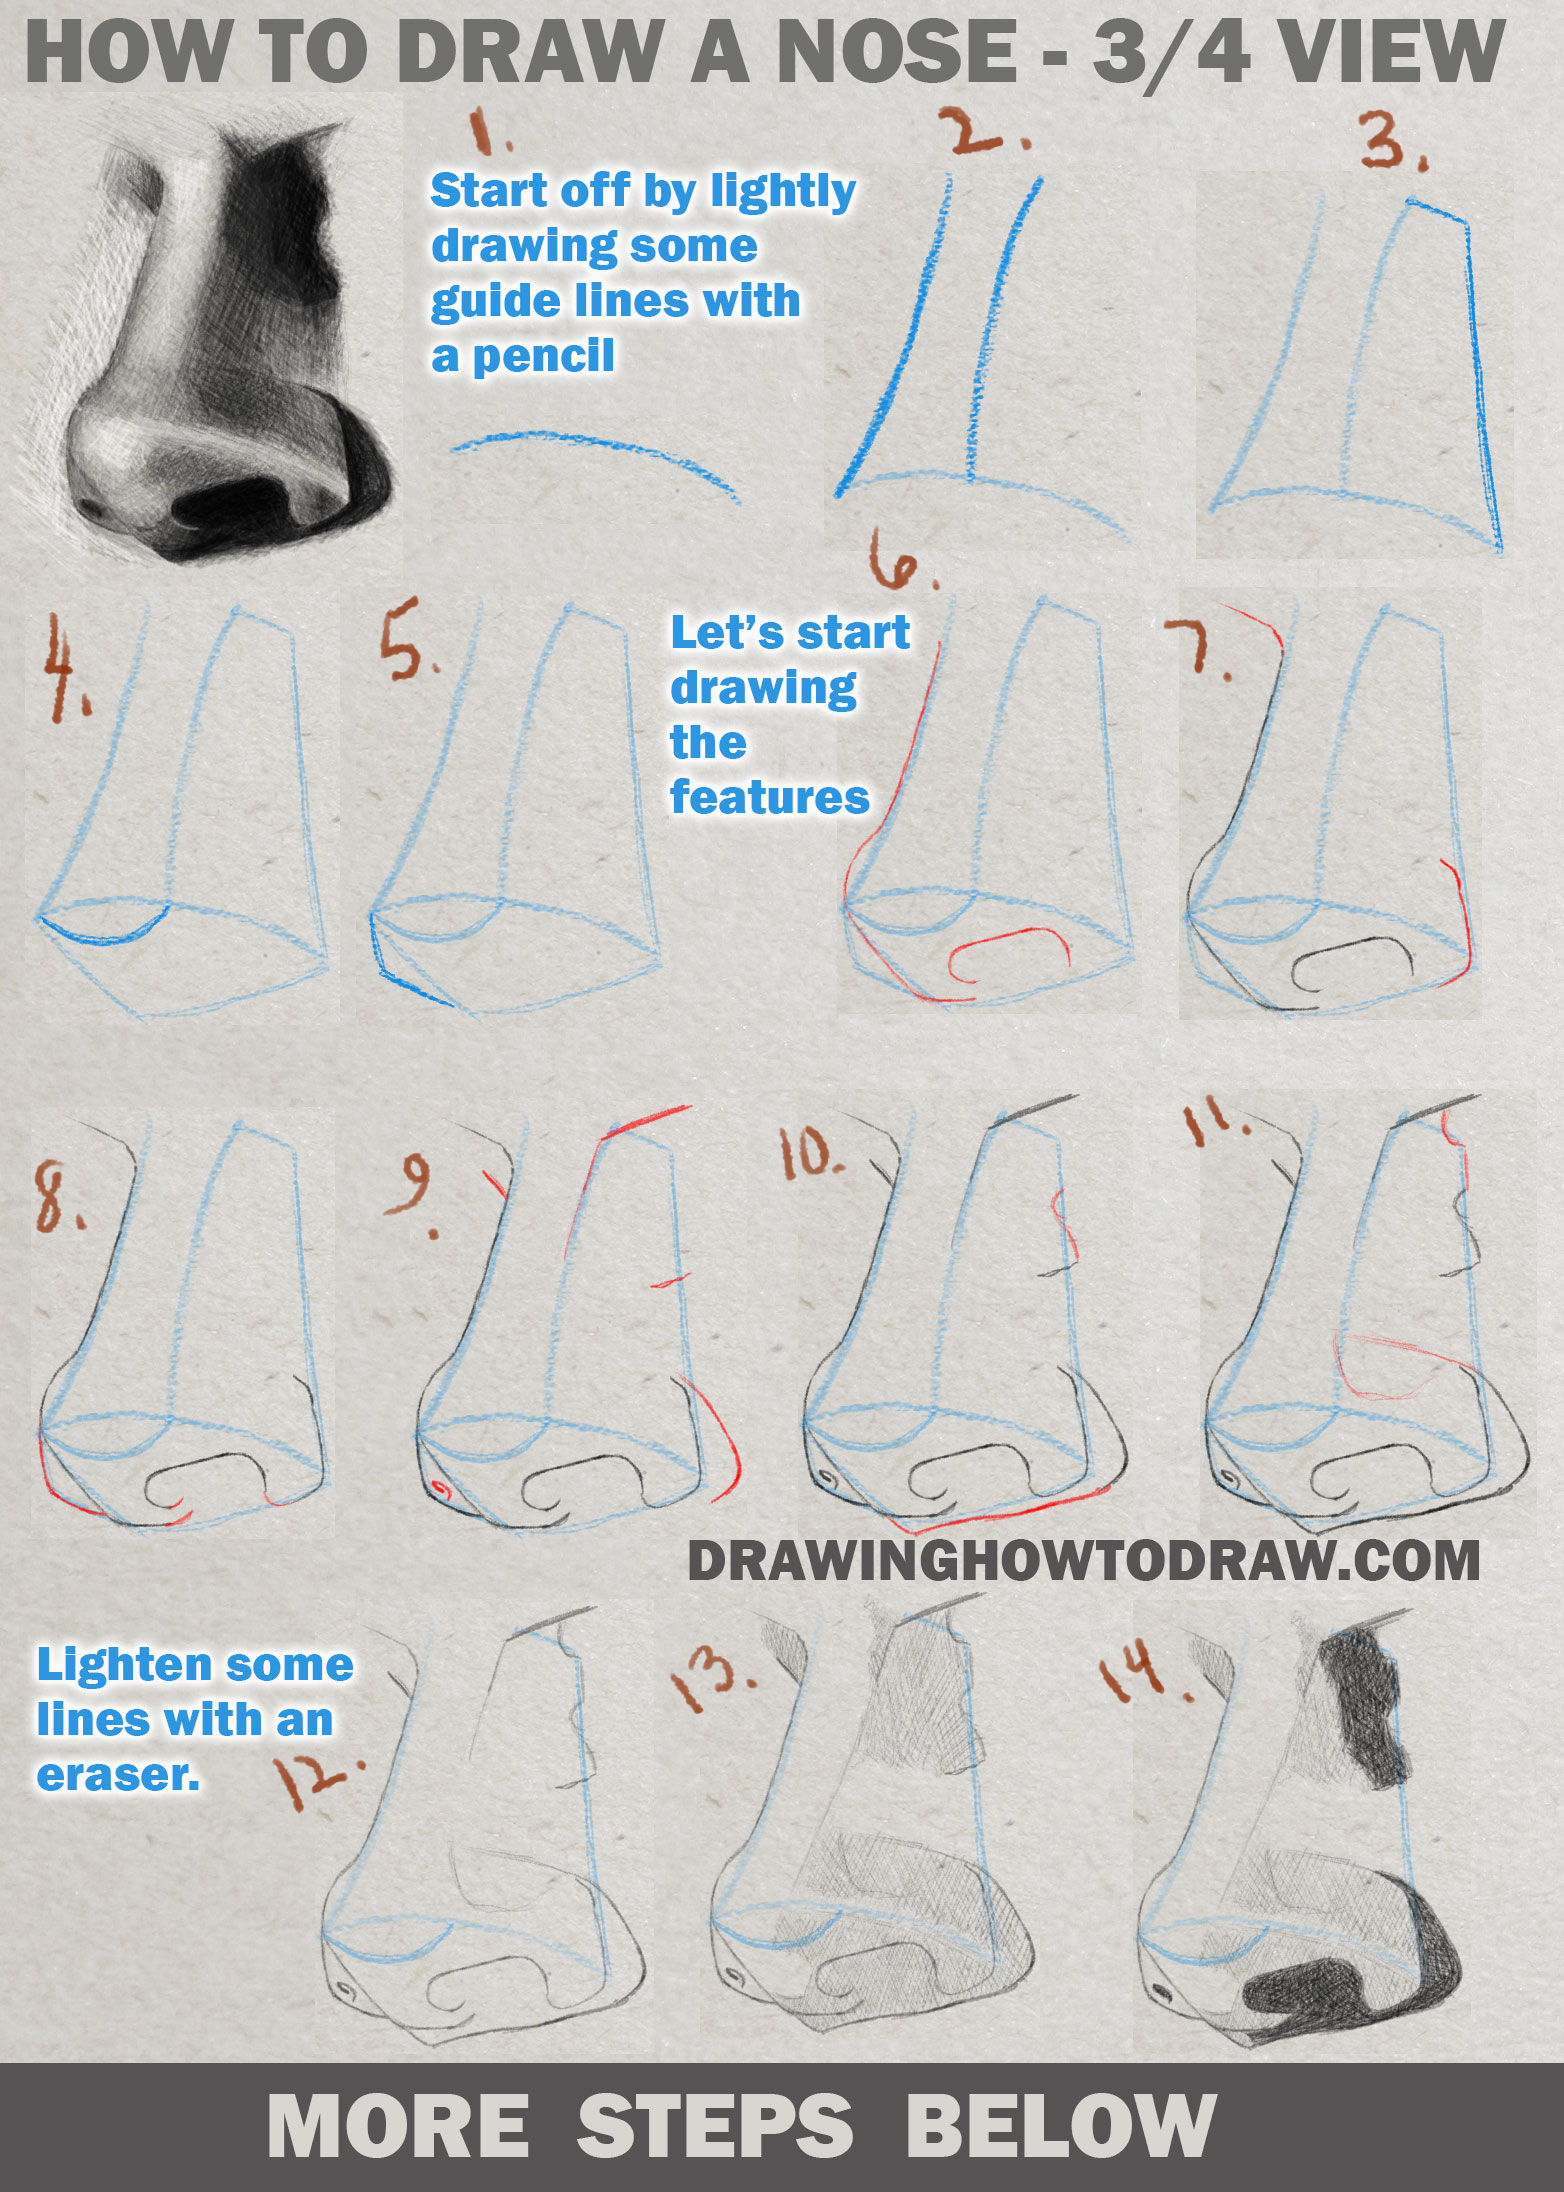 Drawing and Shading a Realistic Nose in 3/4 View in Pencil or Graphite Easy Step by Step Tutorial